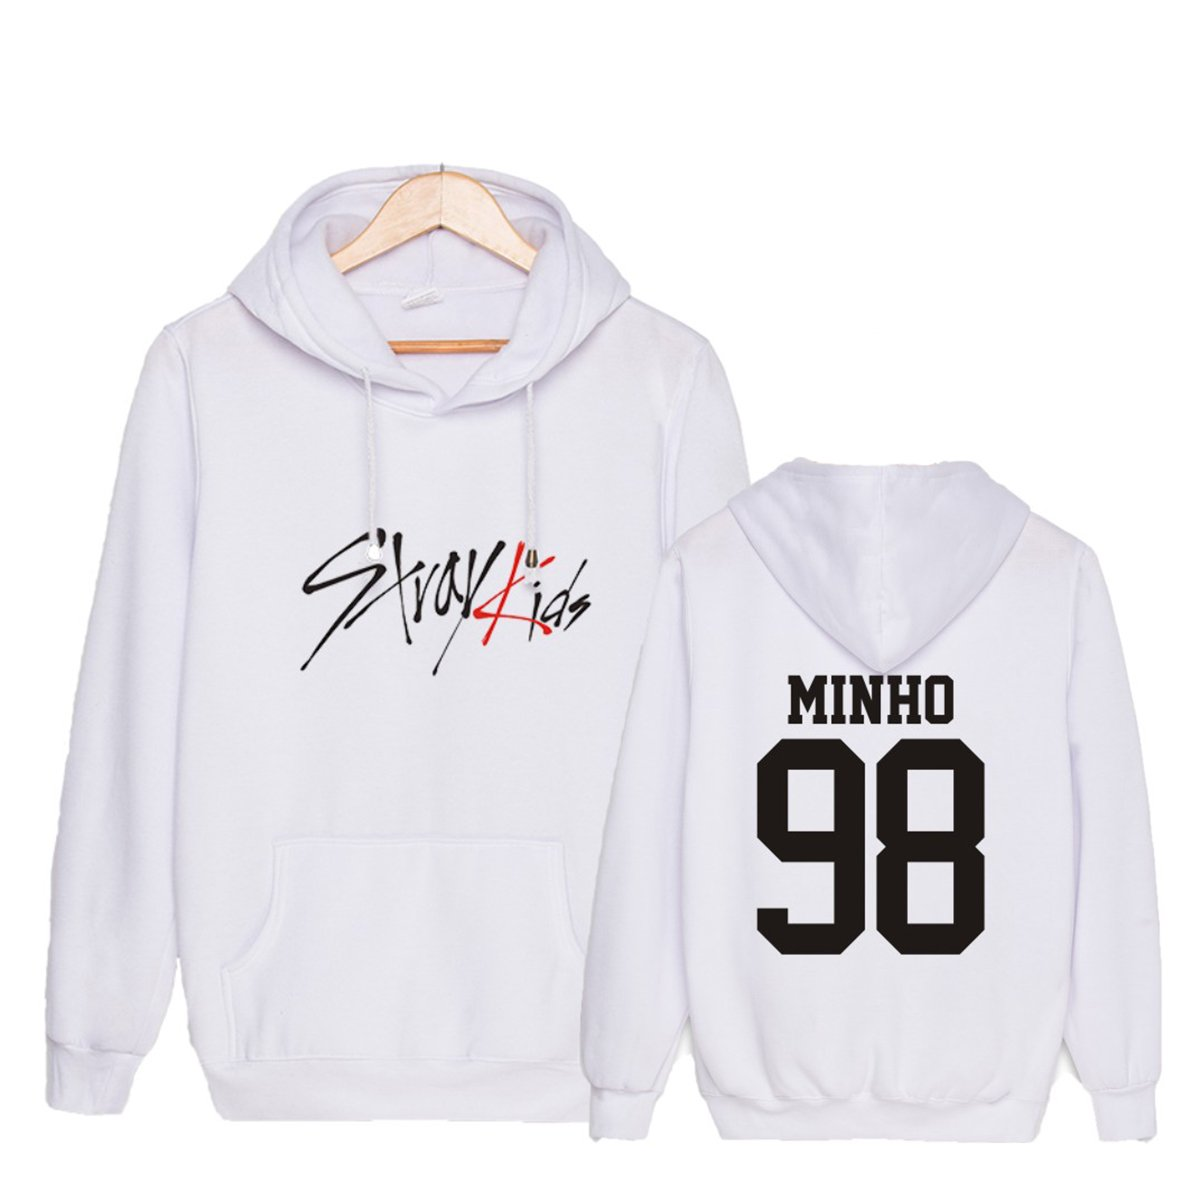 CHAIRAY Kpop Stray Kids Hoodie Sweatshirt ChangBin HyunJin Woojin Sweater